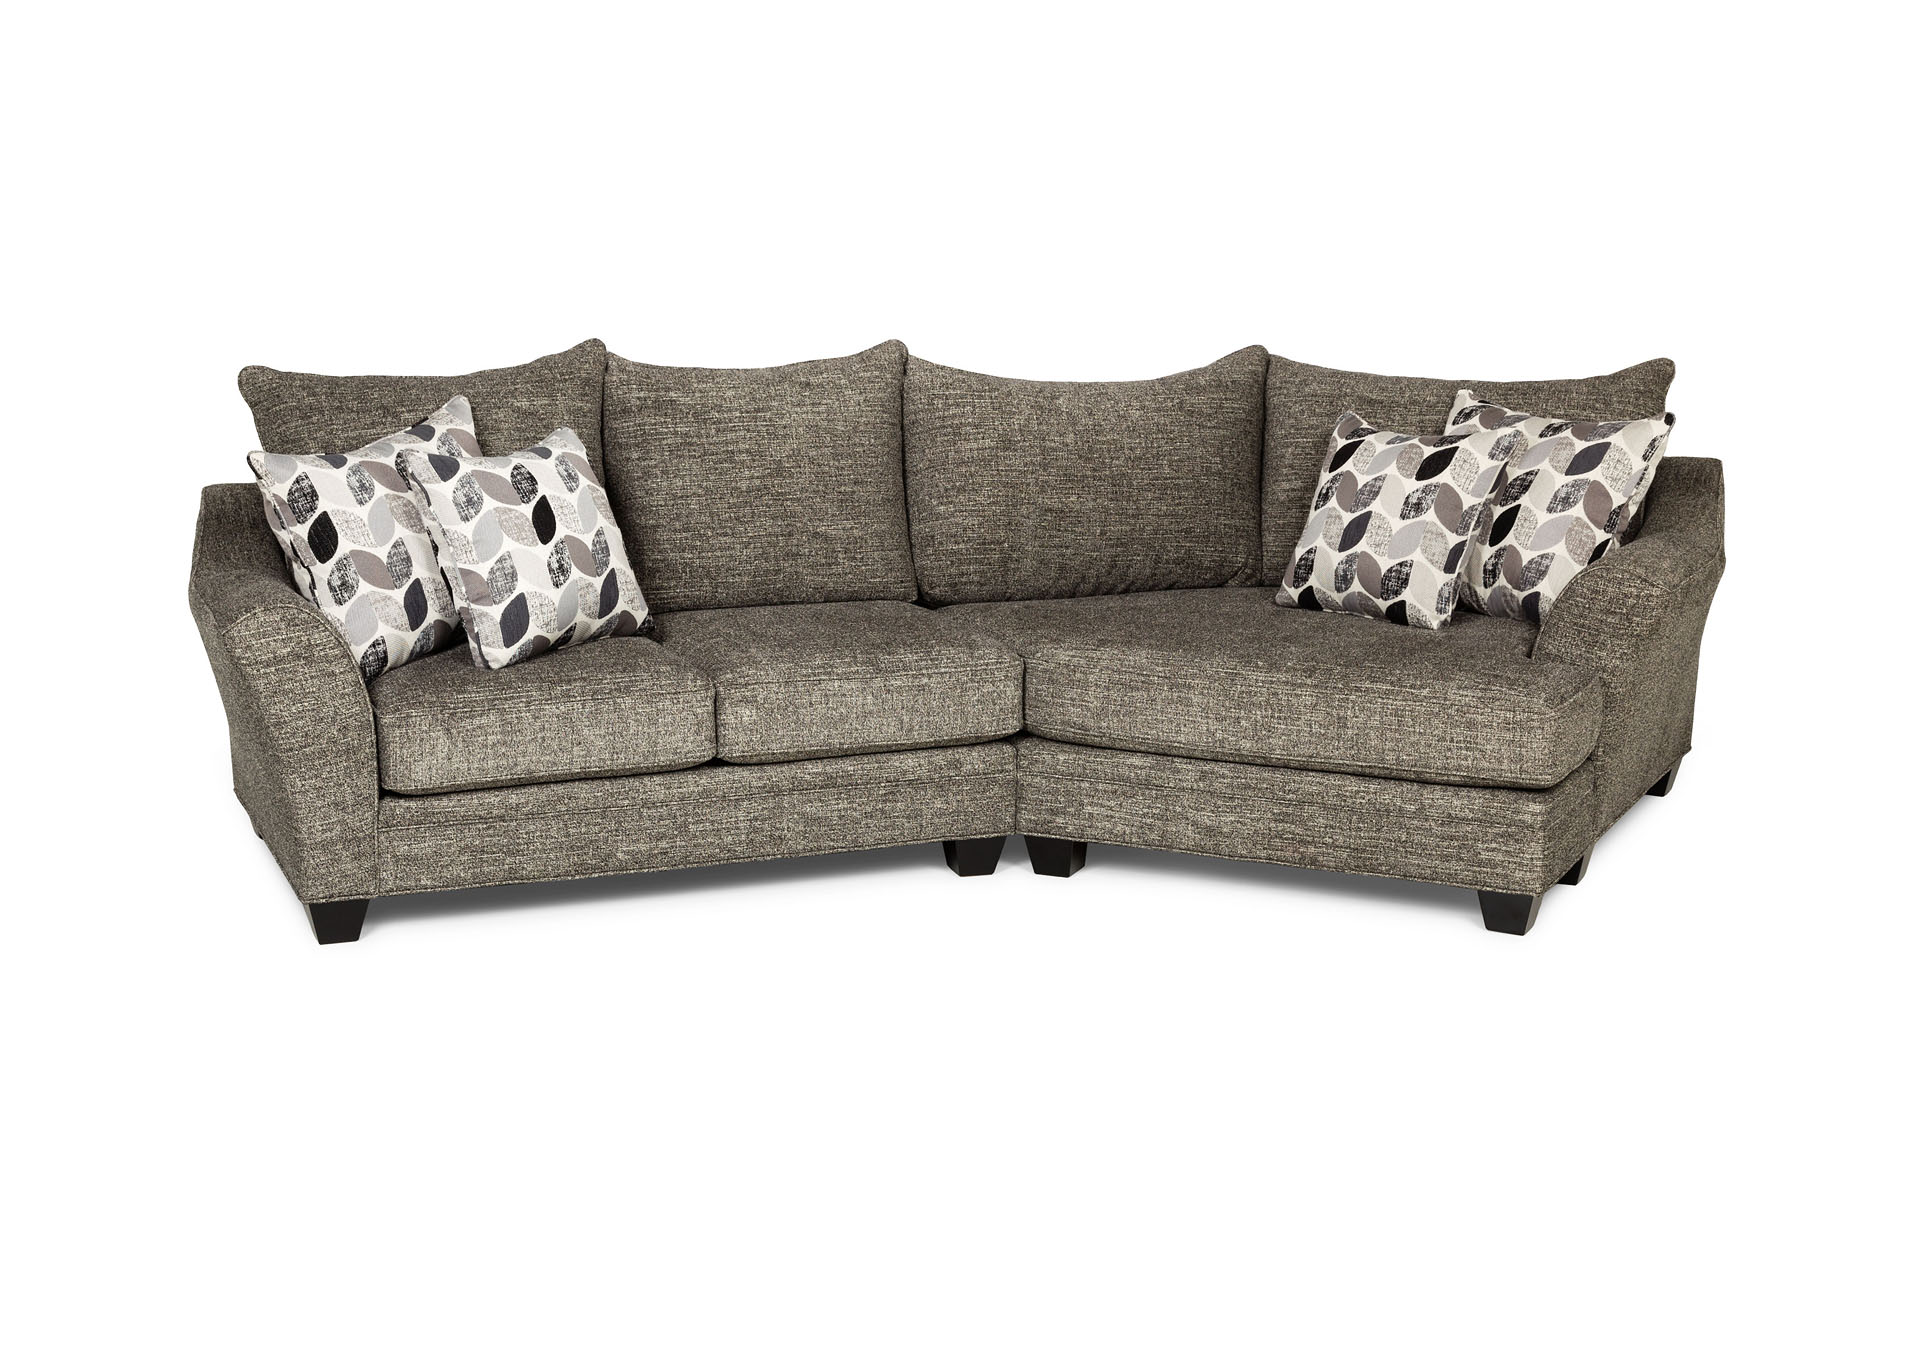 Oslo 2 Piece Sectional,Stanton